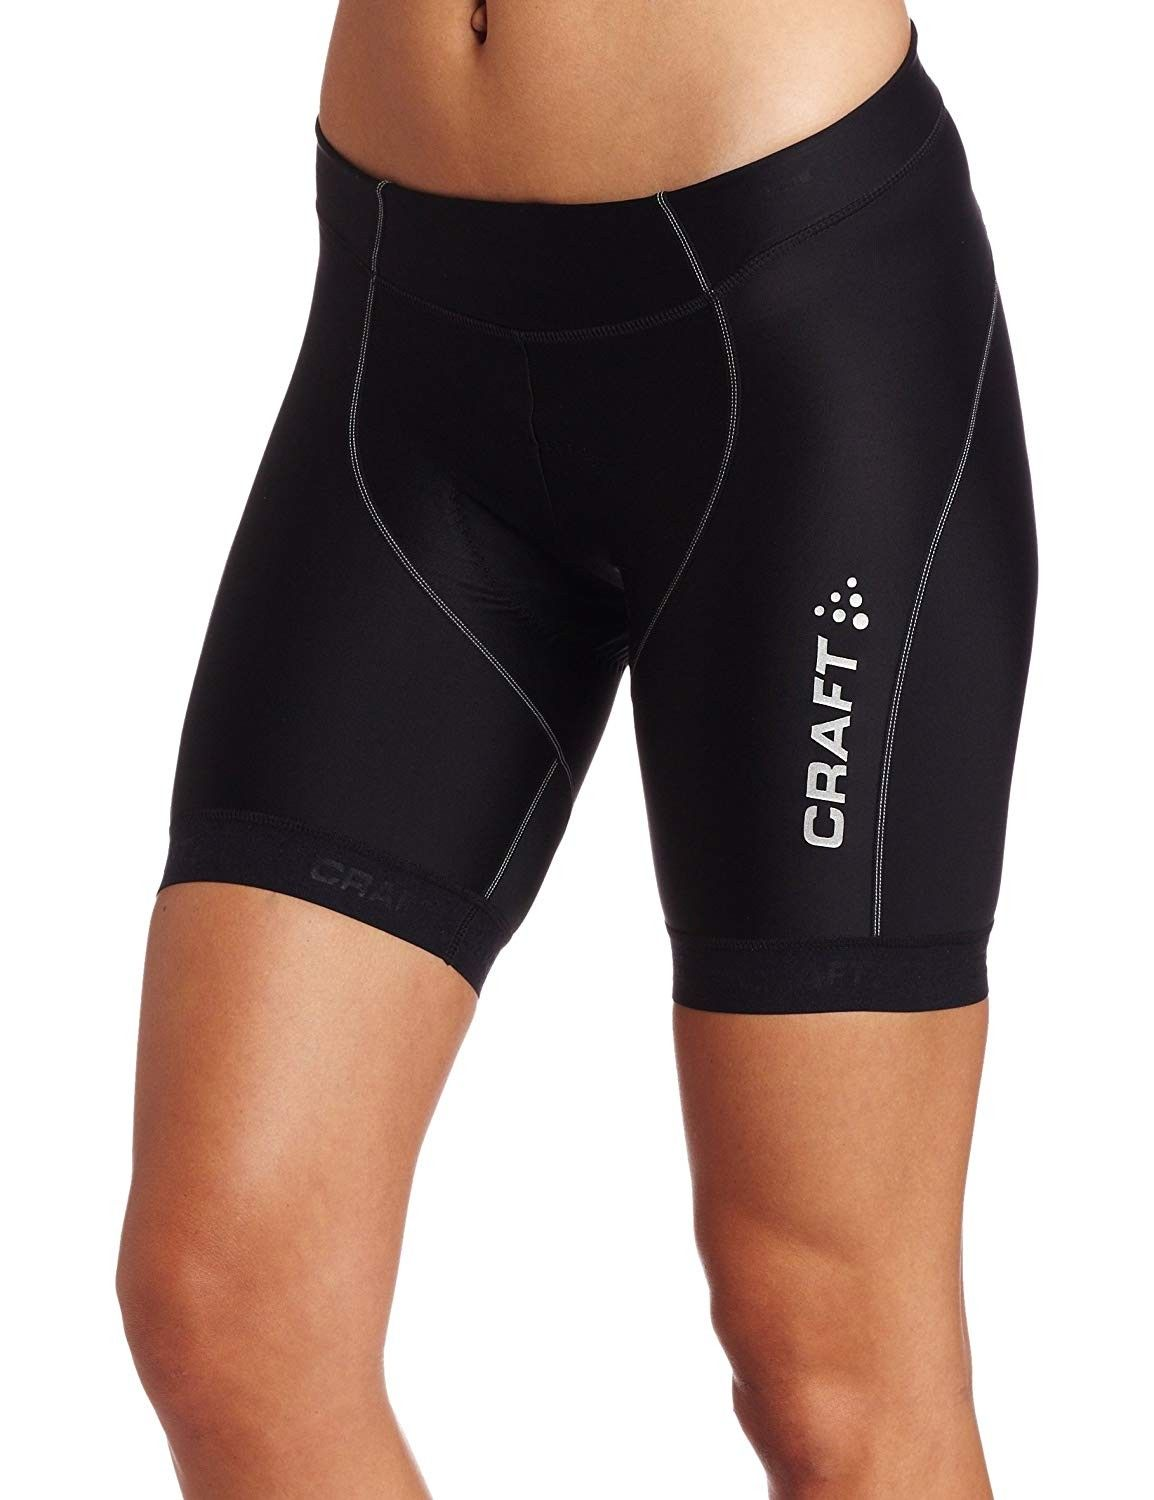 Women's Performance Bike Cycling Training Fitted Padded Tight Shorts: protective/riding/compression/...